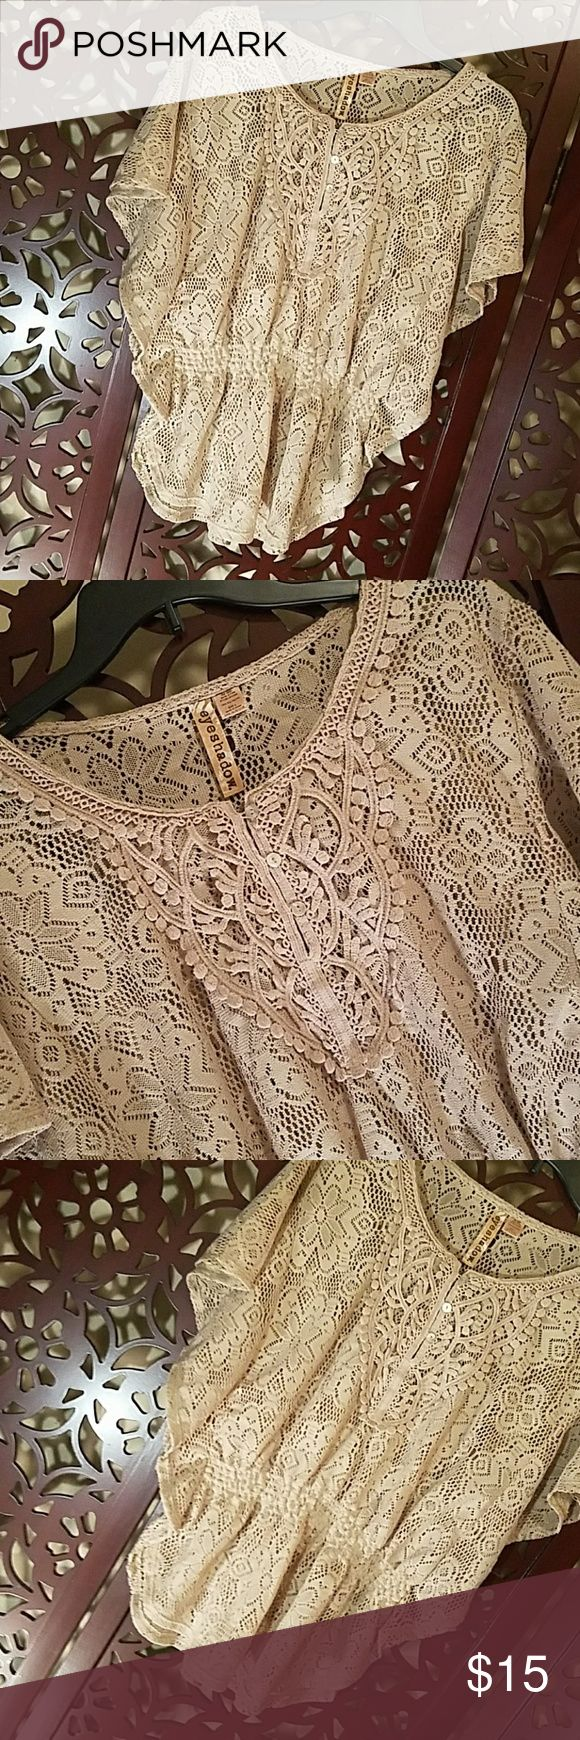 A crocheted like top size LG by Eyeshadow Pics can't do this top justice.  Crochet look, elastic waist,  batwing sleeves,  wear a camisole or tank underneath. In excellent preloved condition.  A dark beige. Eyeshadow Tops